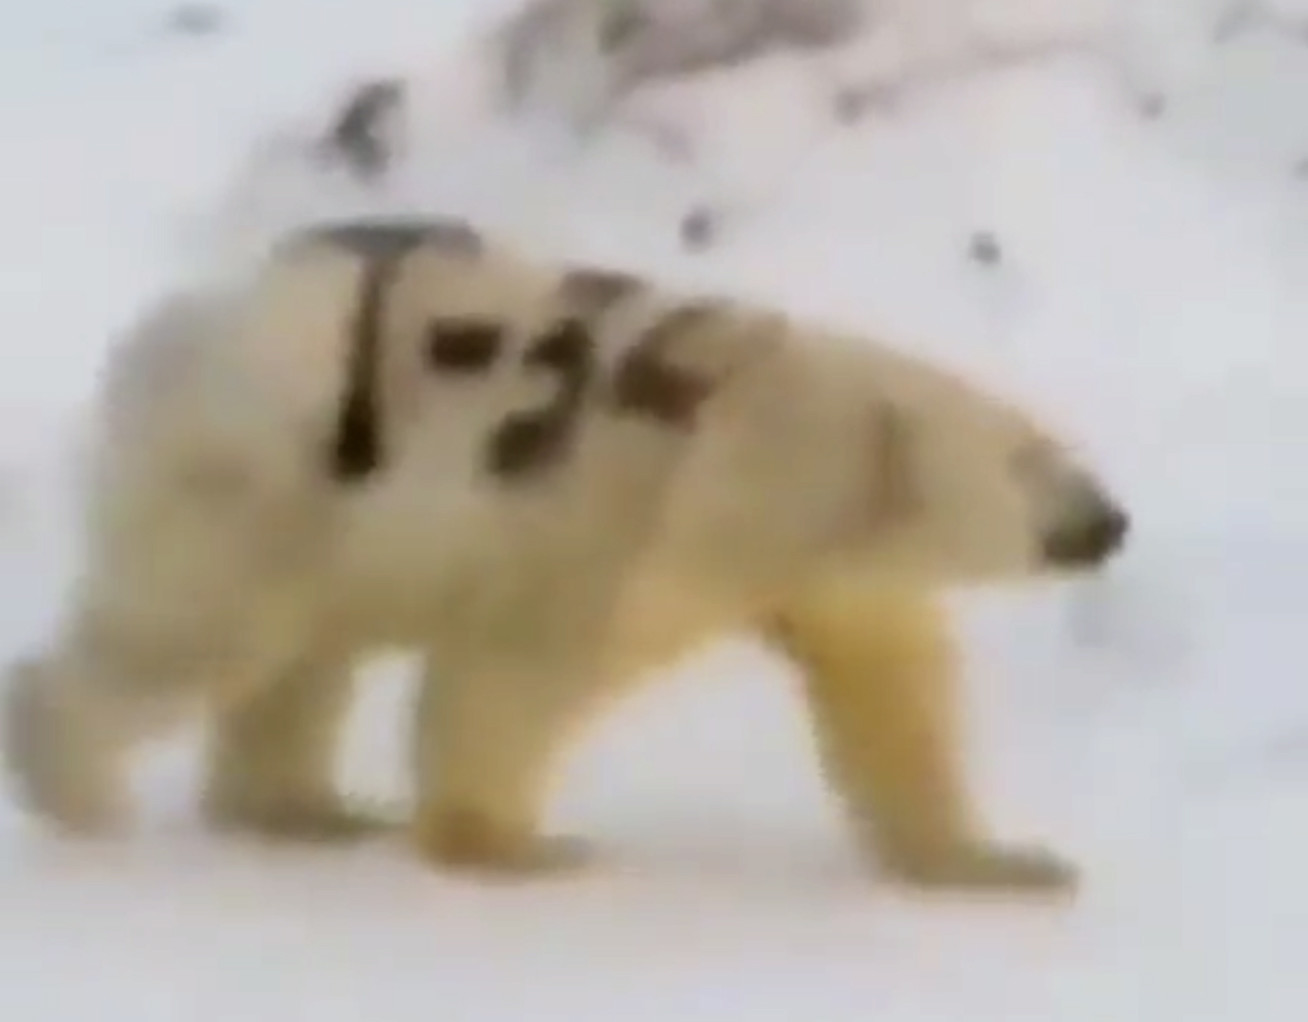 Wildlife experts baffled by spray-painted polar bear in Russia